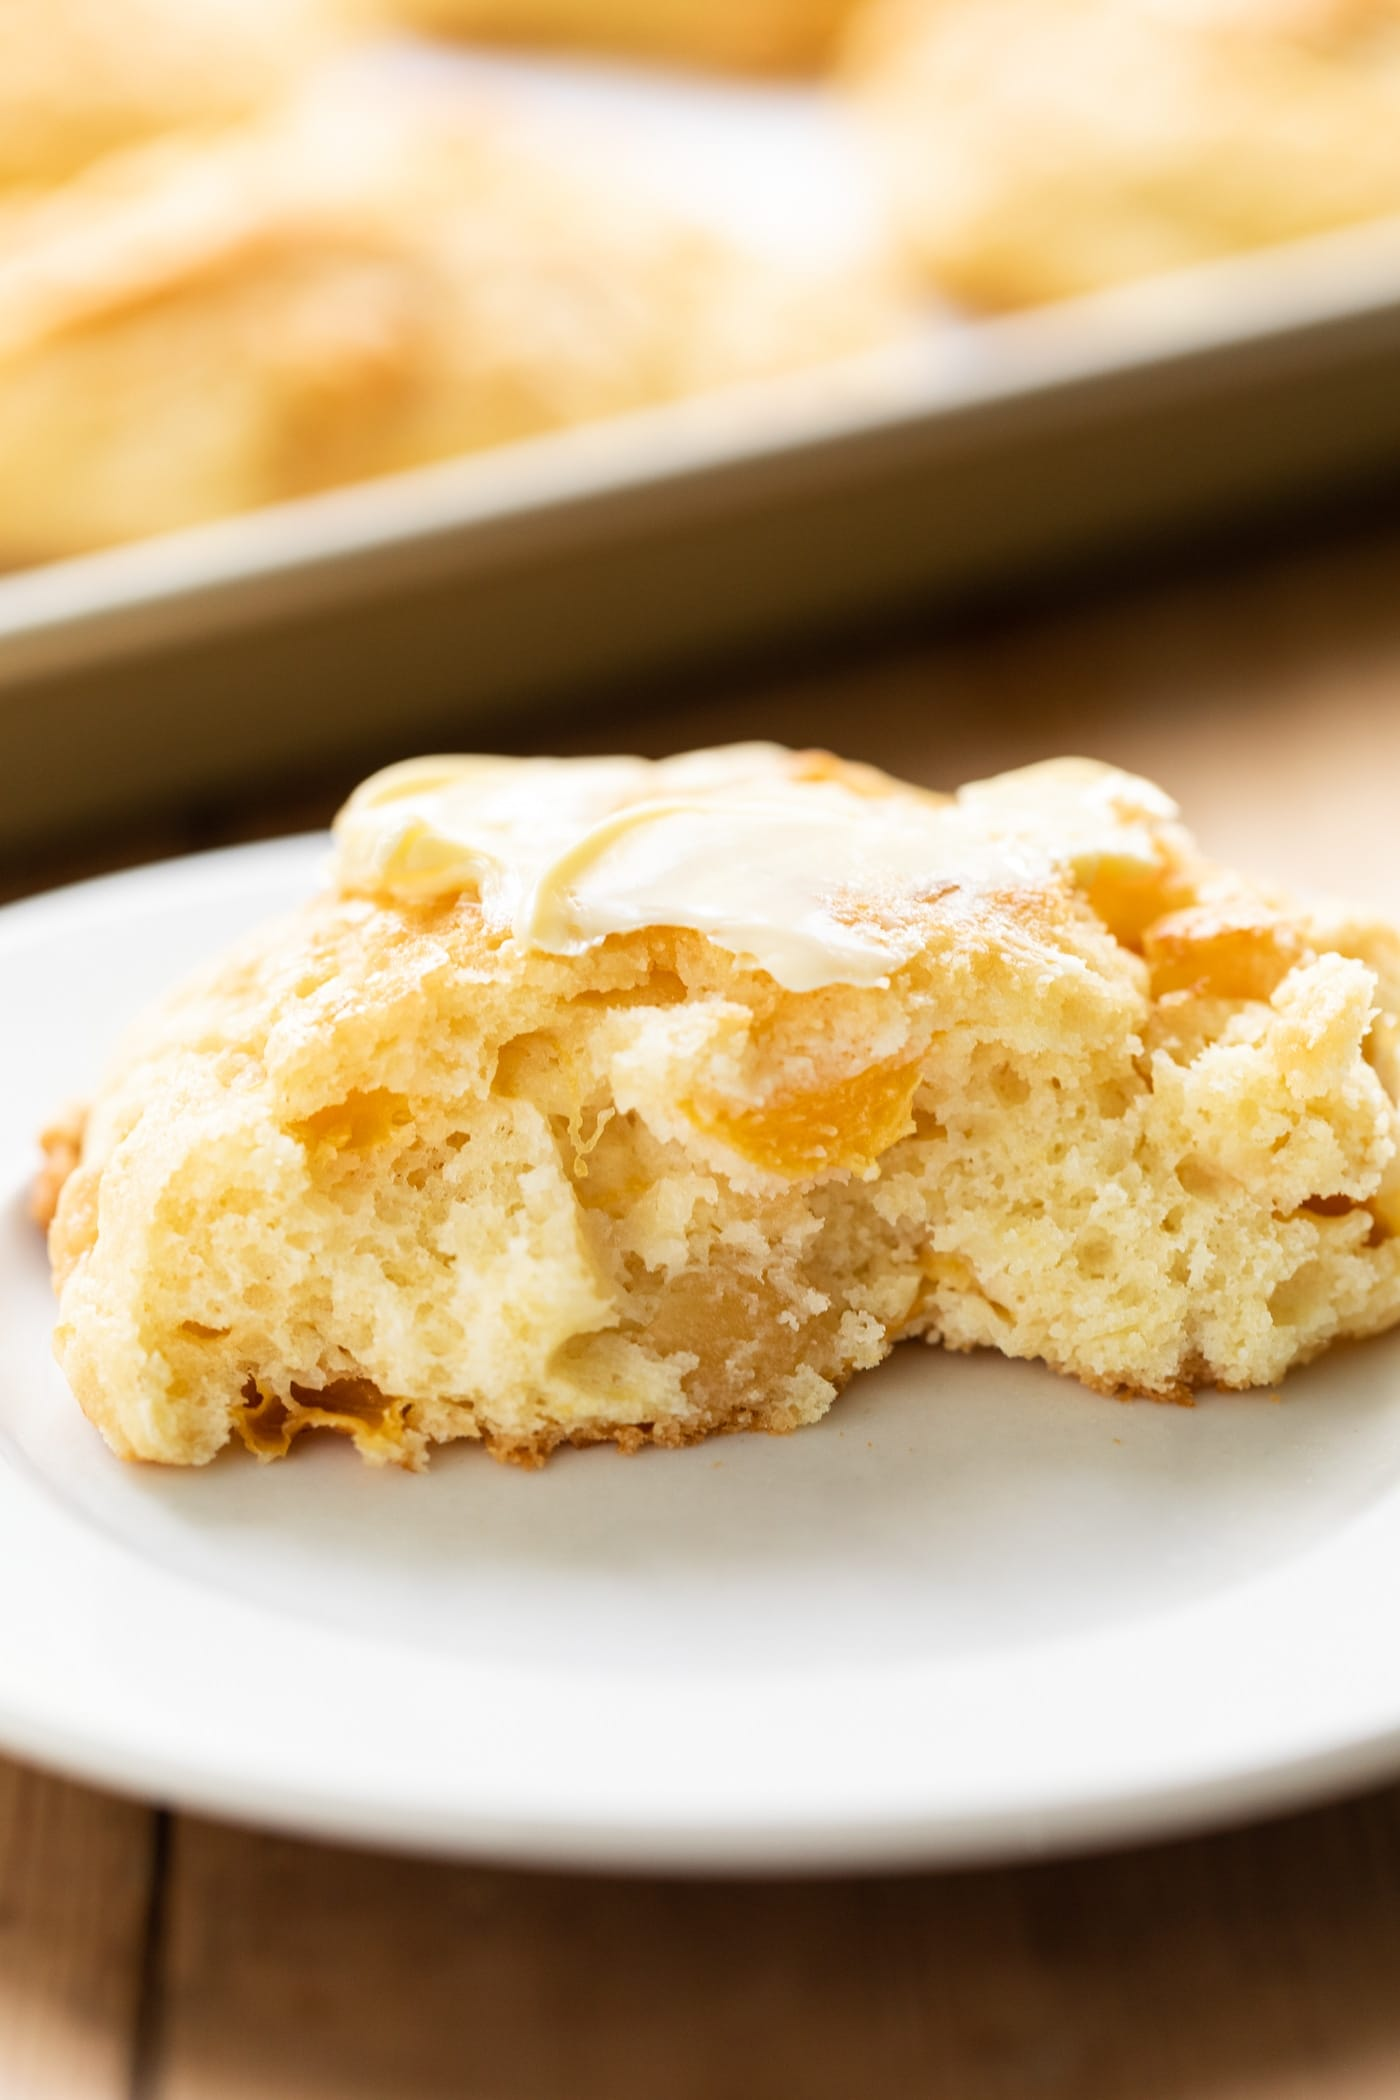 Peach drop biscuit cut in half with center exposed slathered with butter on white plate with extra biscuits on baking sheet in background all on wooden surface